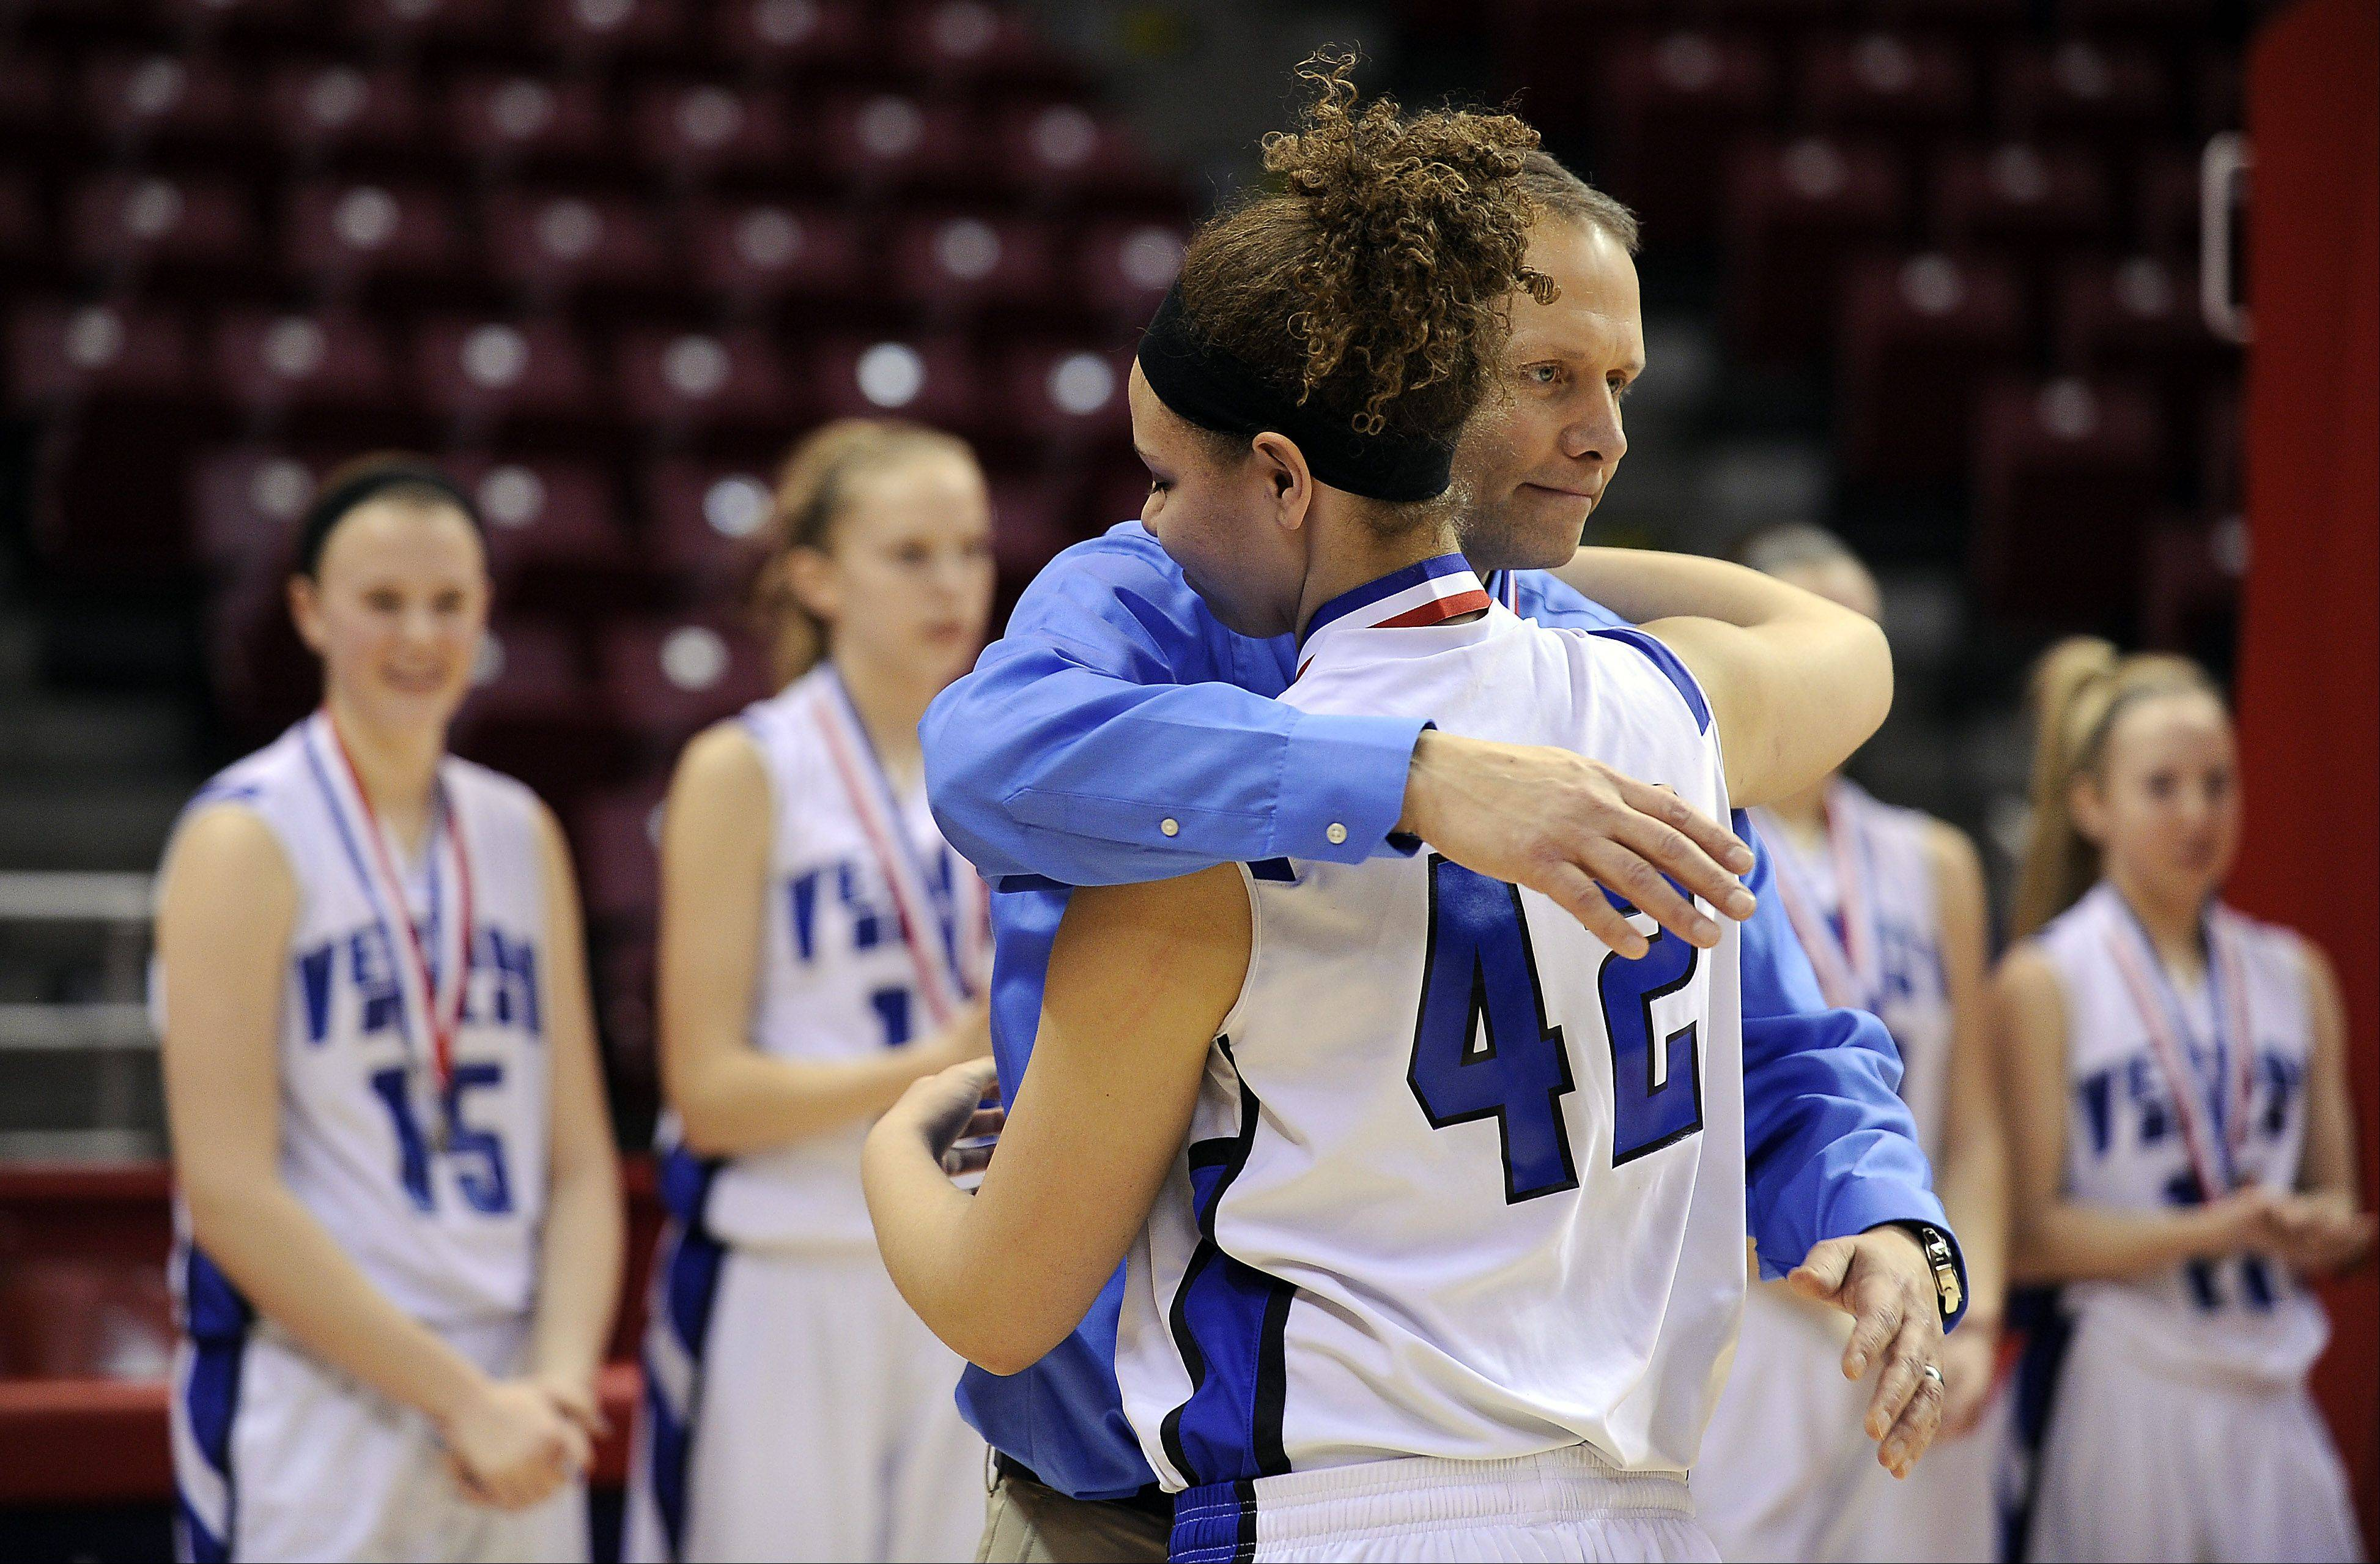 Vernon Hills coach Paul Brettner hugs Lauren Webb after they lost to Quincy Notre Dame in the Class 3A state girls basketball championship game in Normal on Saturday.